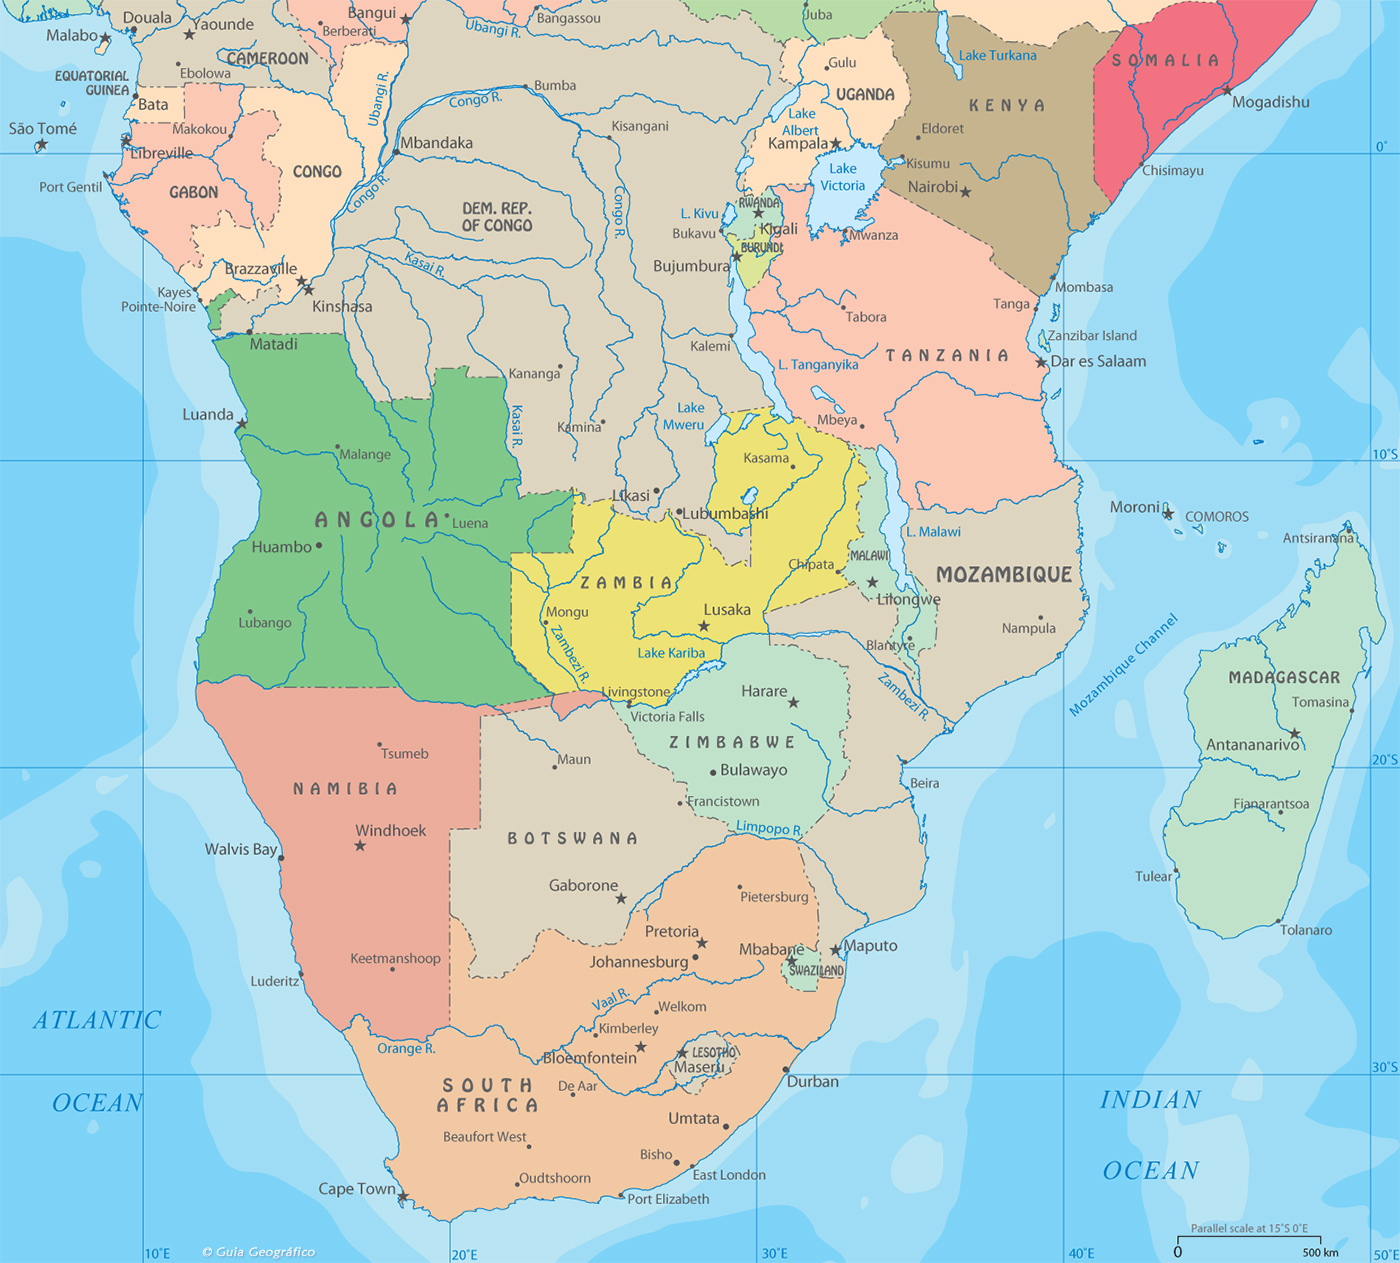 Political Map of Central and South Africa on physical regions of africa, physiographic map africa, geographic features of africa, world atlas africa, landforms and waterways in africa, atlas mt africa map, world map with africa, cameroon africa, bodies of water near africa, independence in africa, atlas of asia's physical features, landforms in west africa, physical landscape of africa, canary islands africa, atlas of southeast asia, atlas map of asia, landmarks in central africa, atlas of north africa, phyiscal atlas of africa, online atlas of africa,